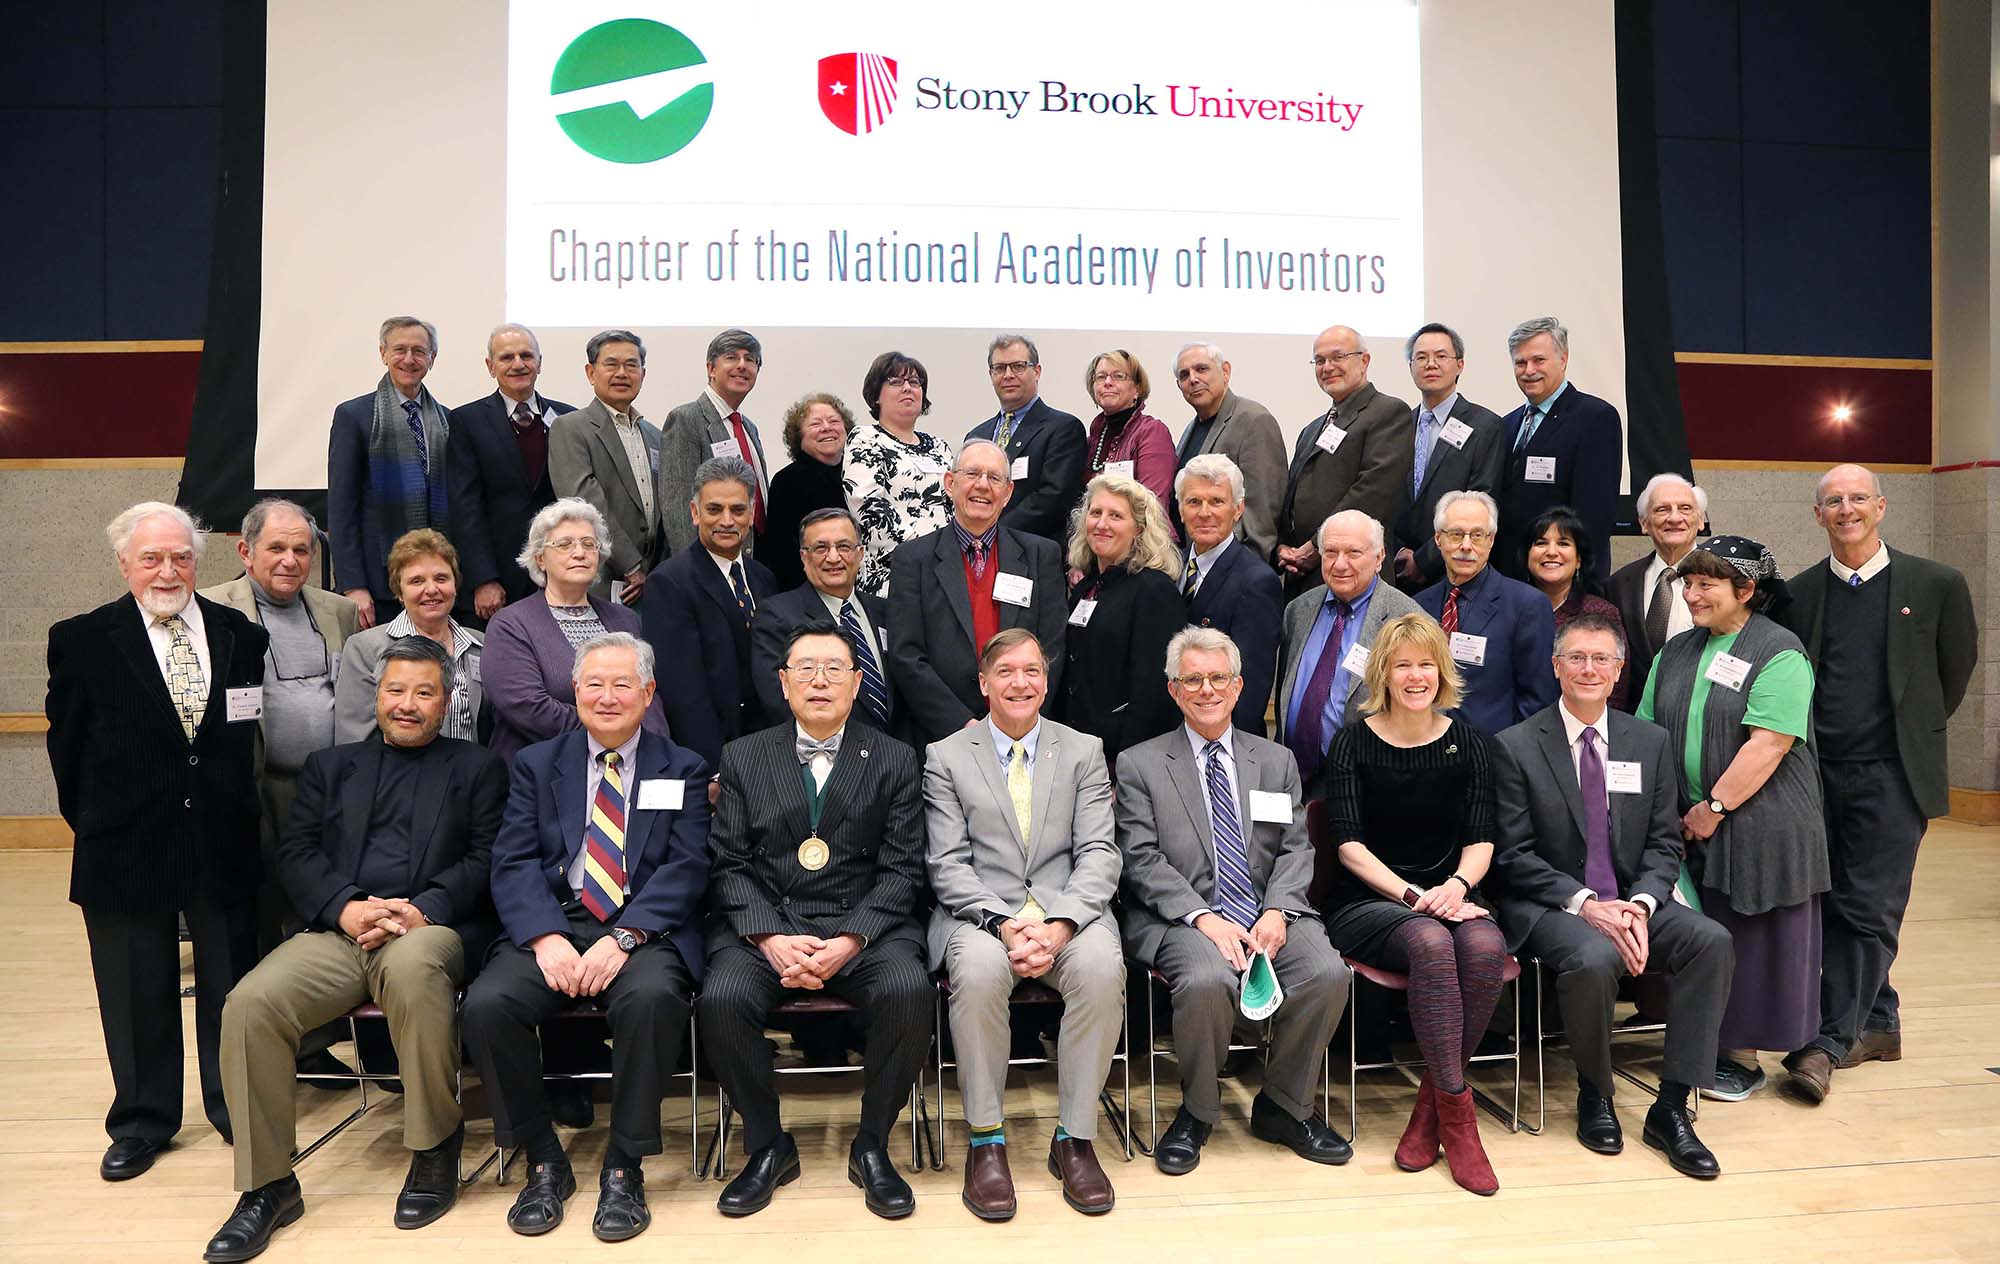 The 30 inaugural members with SBU President Samuel L. Stanley Jr. (seated, center), SBU-NAI President Iwao Ojima (next to Dr. Stanley, left), Vice President for Research David Conover (next to Dr. Stanley, right), and Director of Technology Licensing/Industry Relations Peter Donnelly (seated, far right)